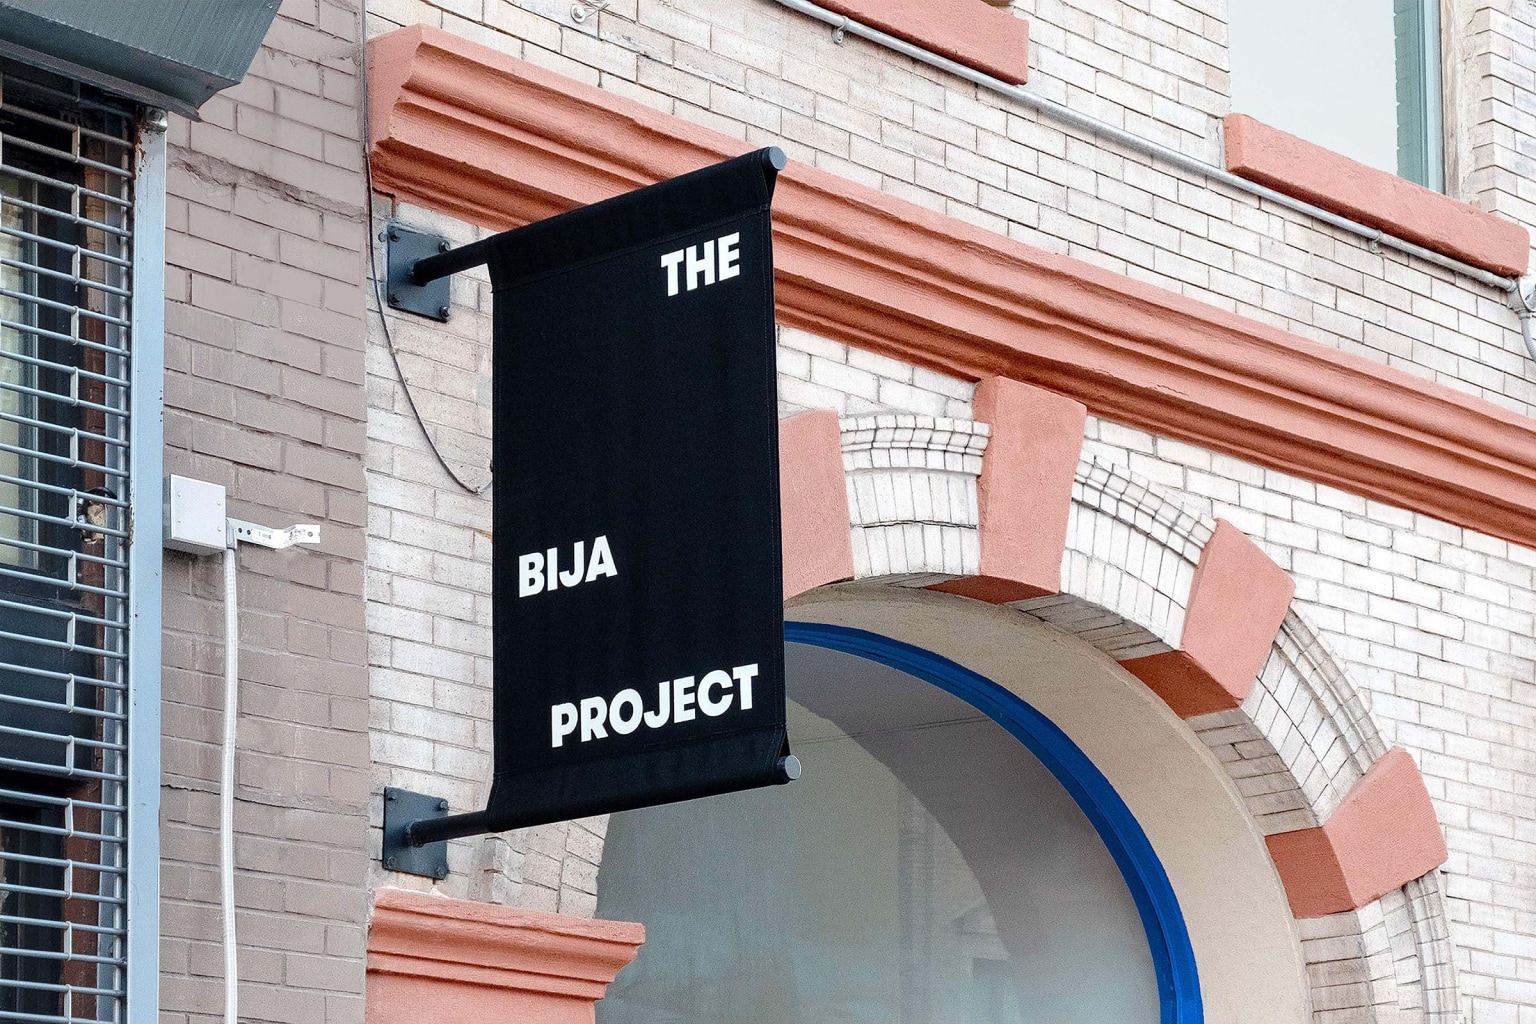 The Bija Project